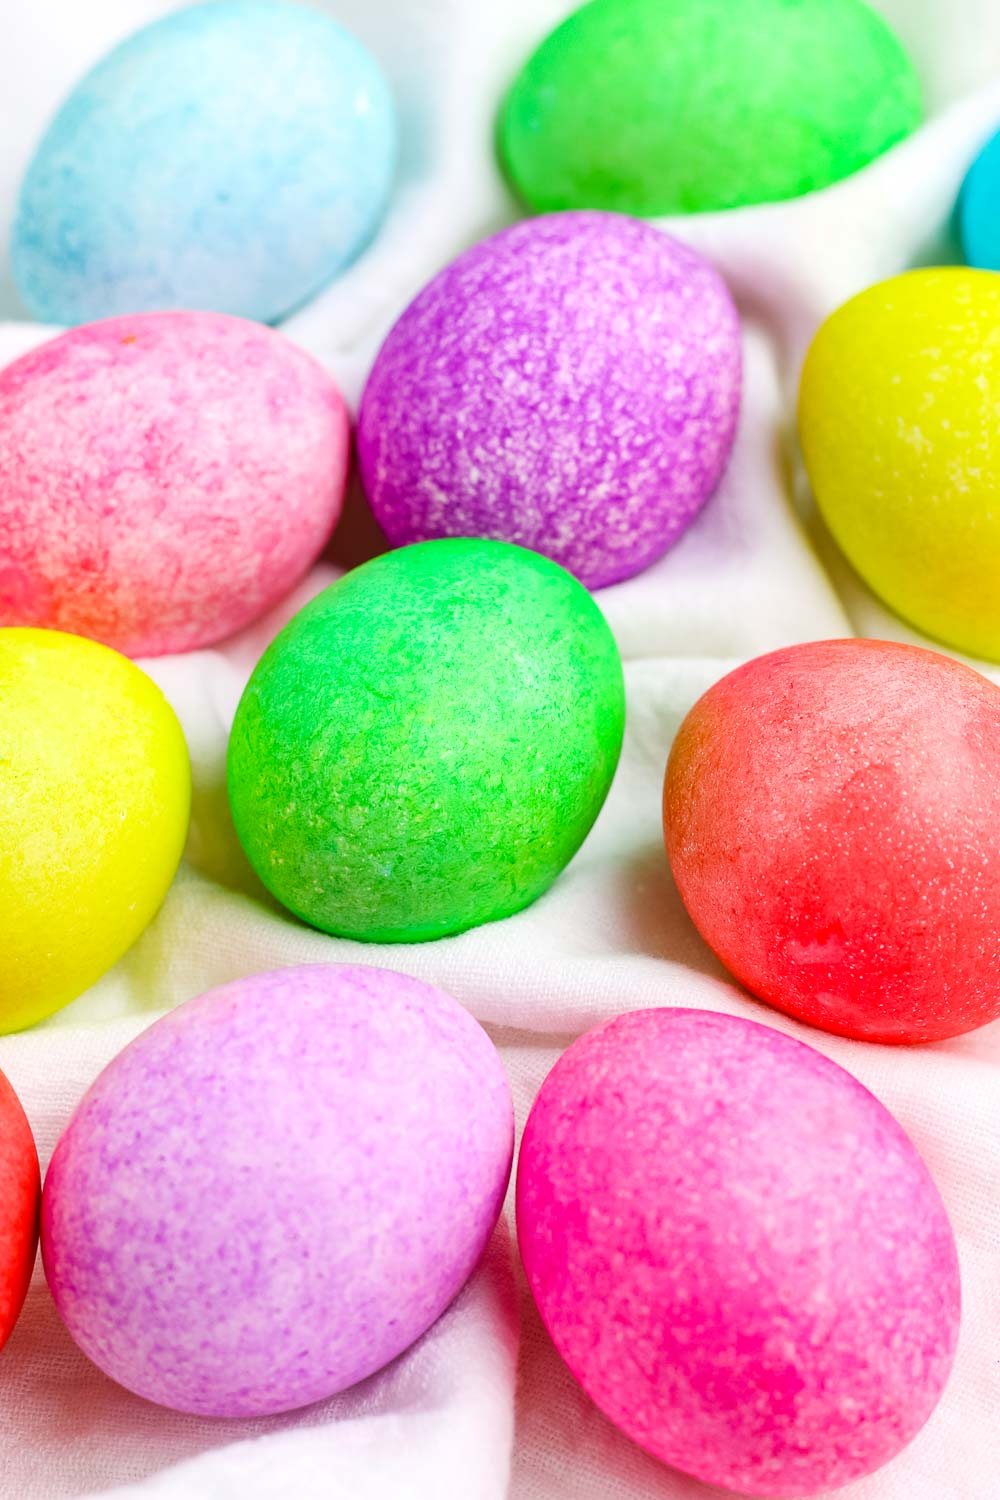 A close up picture of the finished food coloring dyed Easter eggs.